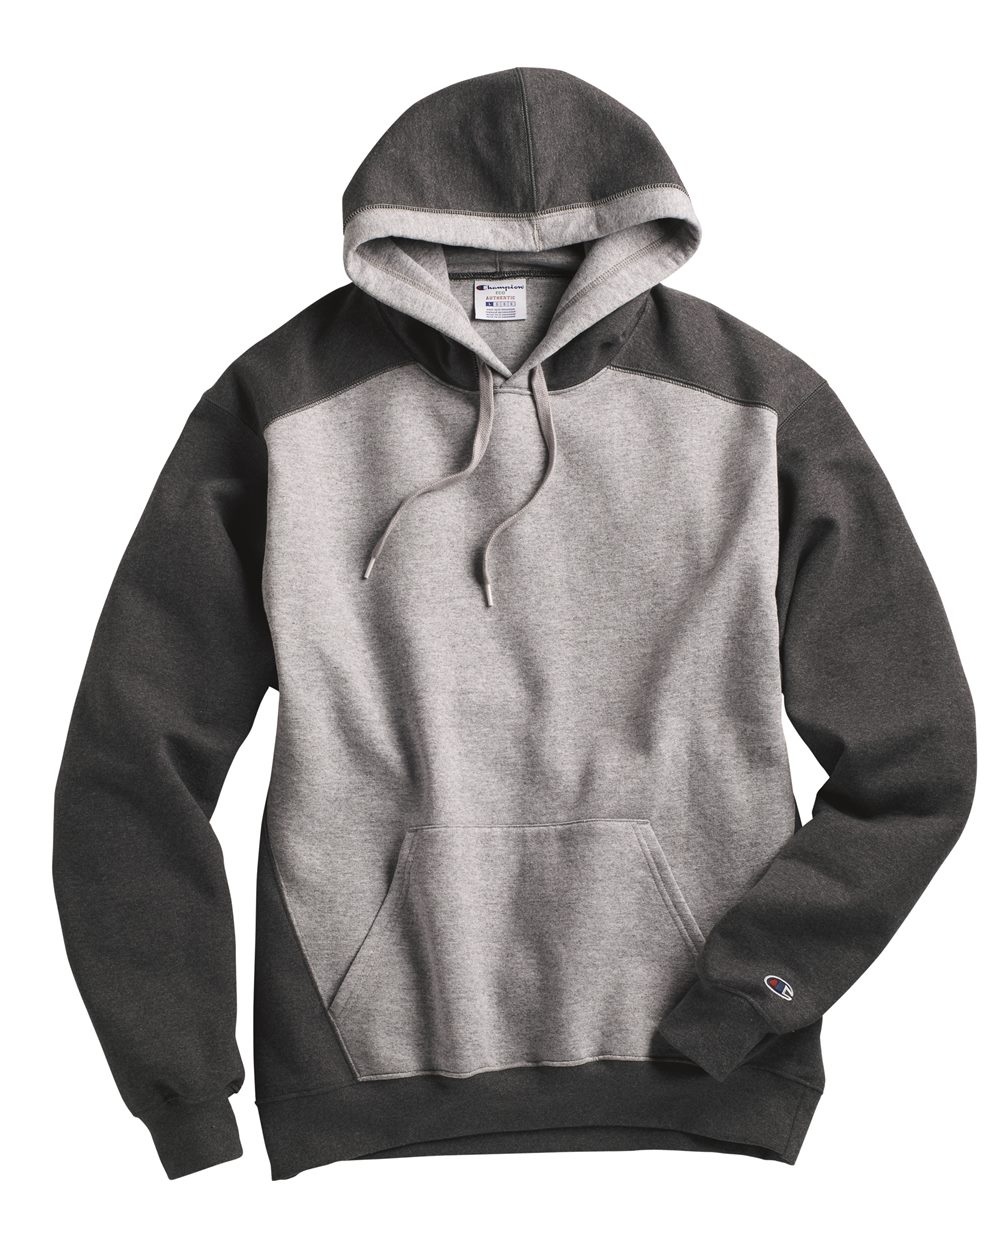 Champion S750 - Double Dry Eco Colorblocked Hooded Sweatshirt